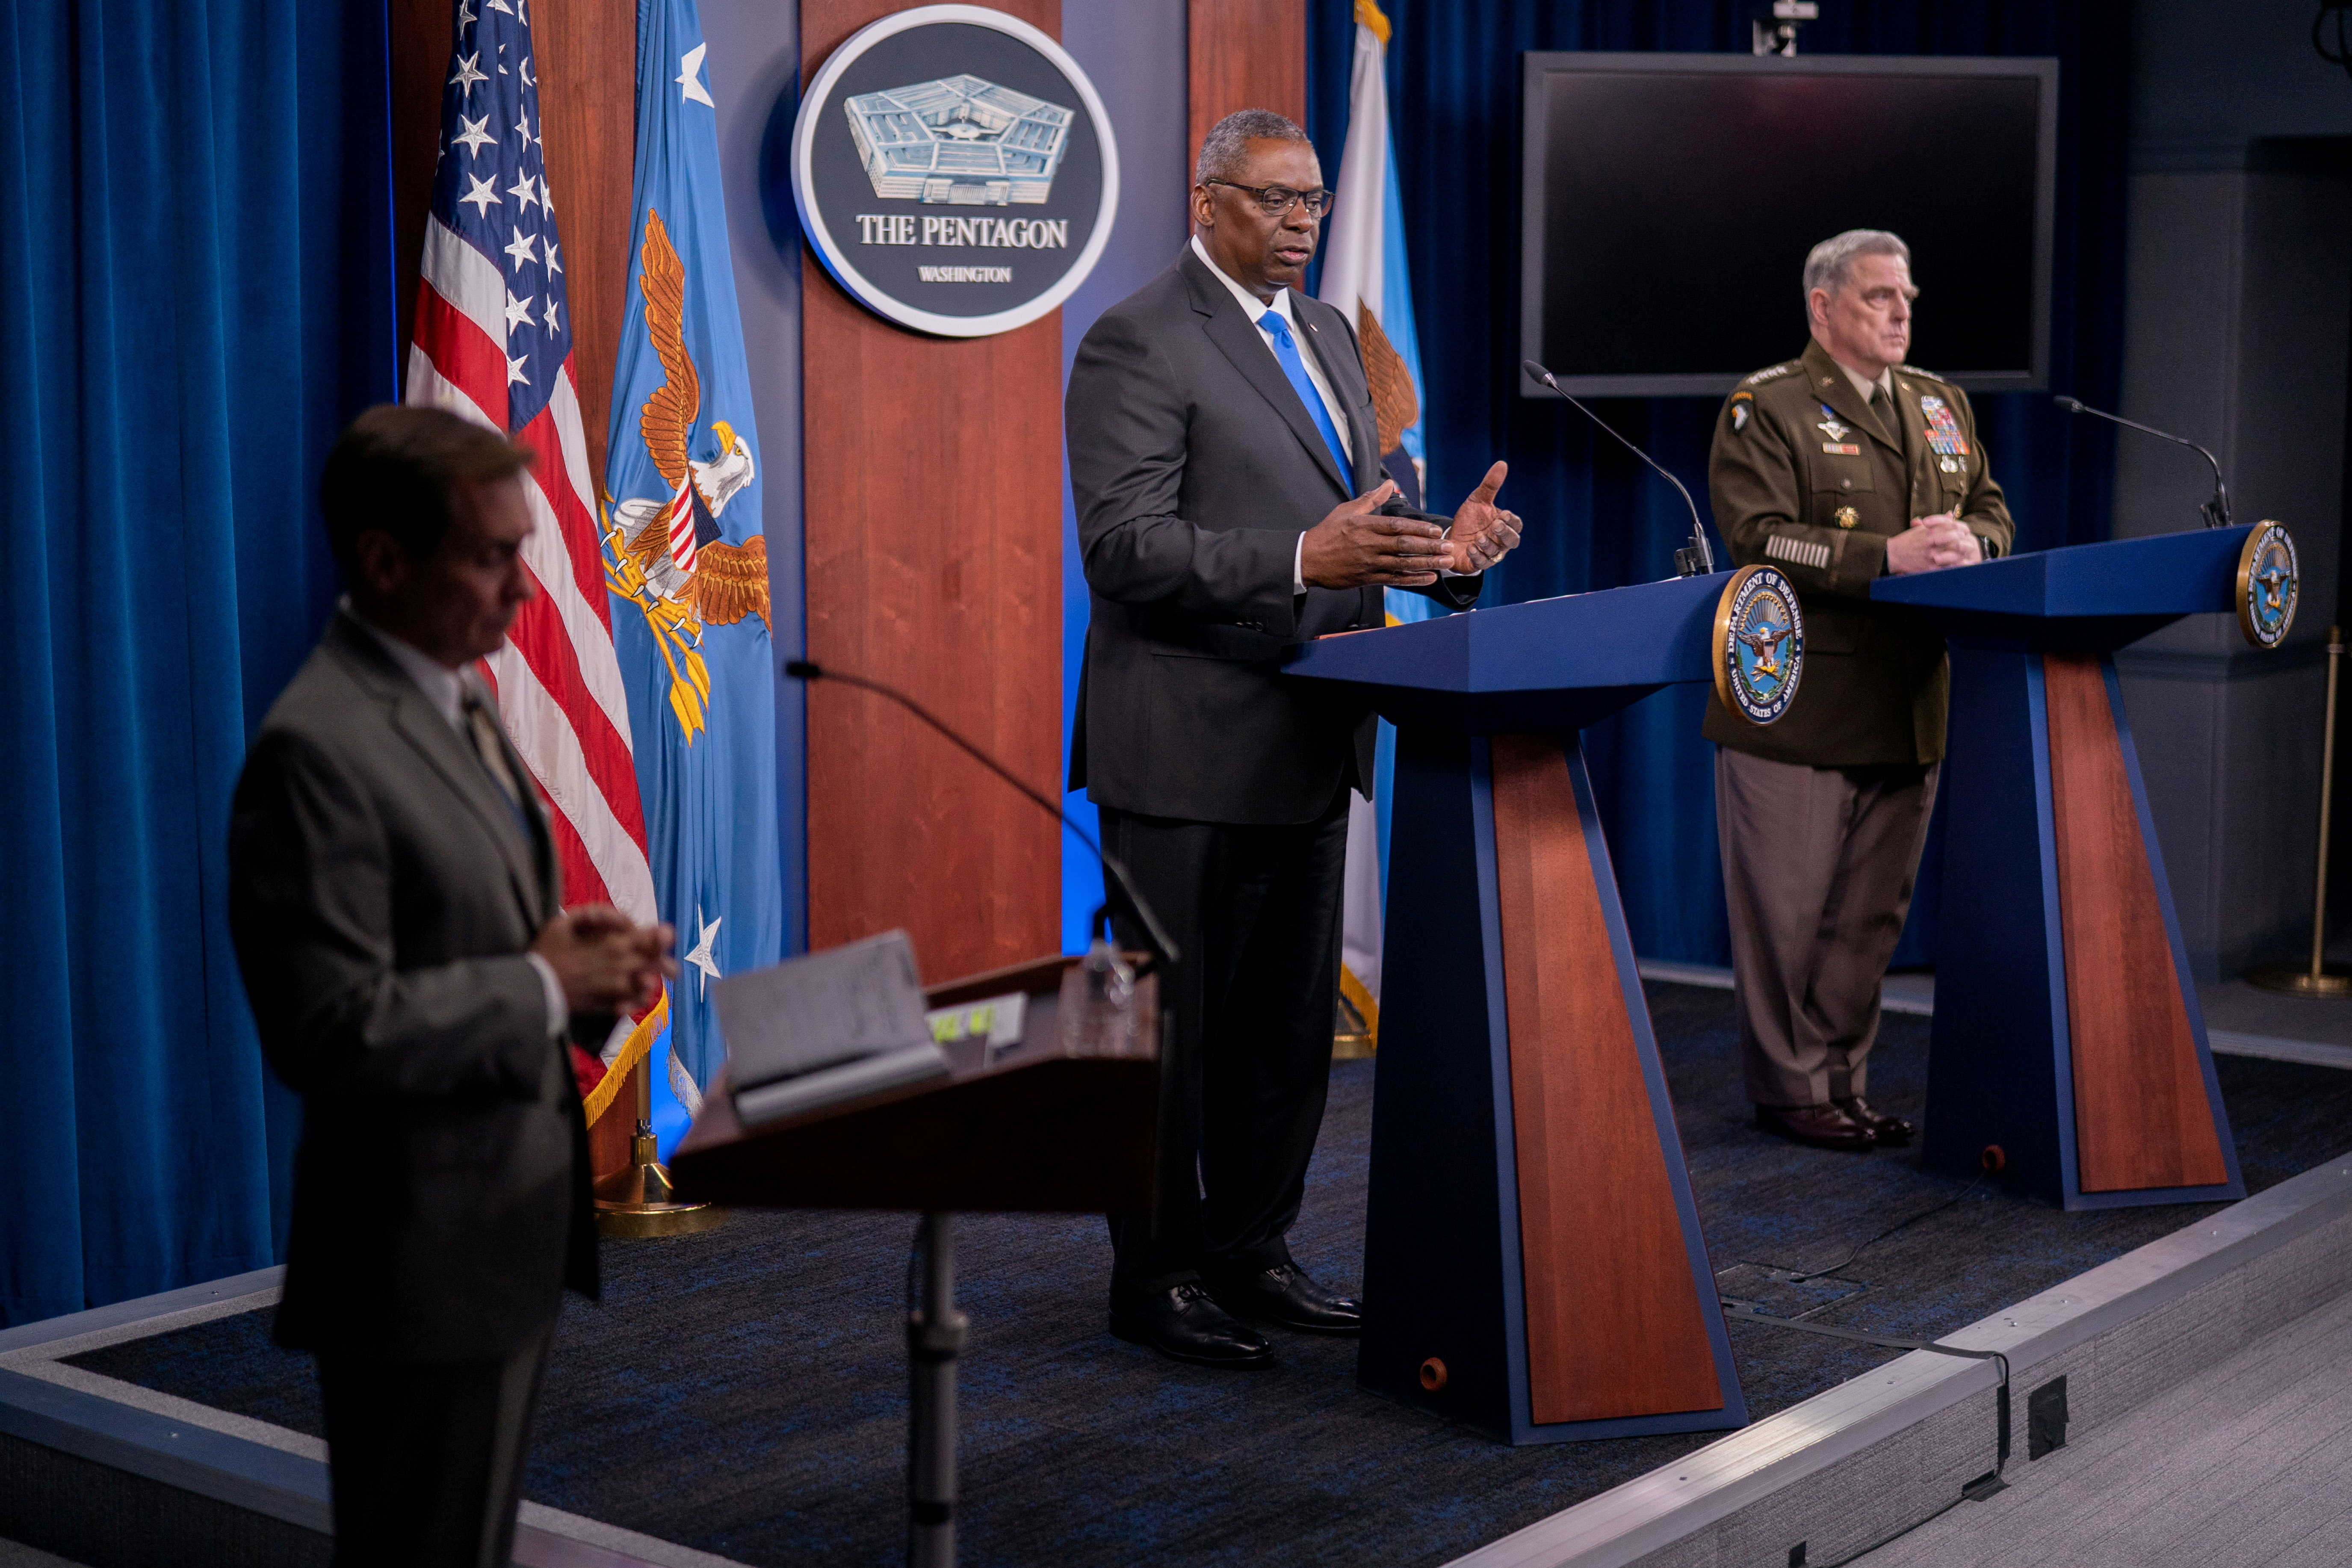 U.S. Defense Secretary Lloyd Austin, center, and Chairman of the Joint Chiefs of Staff General Mark Milley, right, brief reporters at the Pentagon as the U.S. military nears the formal end of its mission in Afghanistan in Arlington, Virginia, U.S. July 21, 2021. REUTERS/Ken Cedeno/File Photo